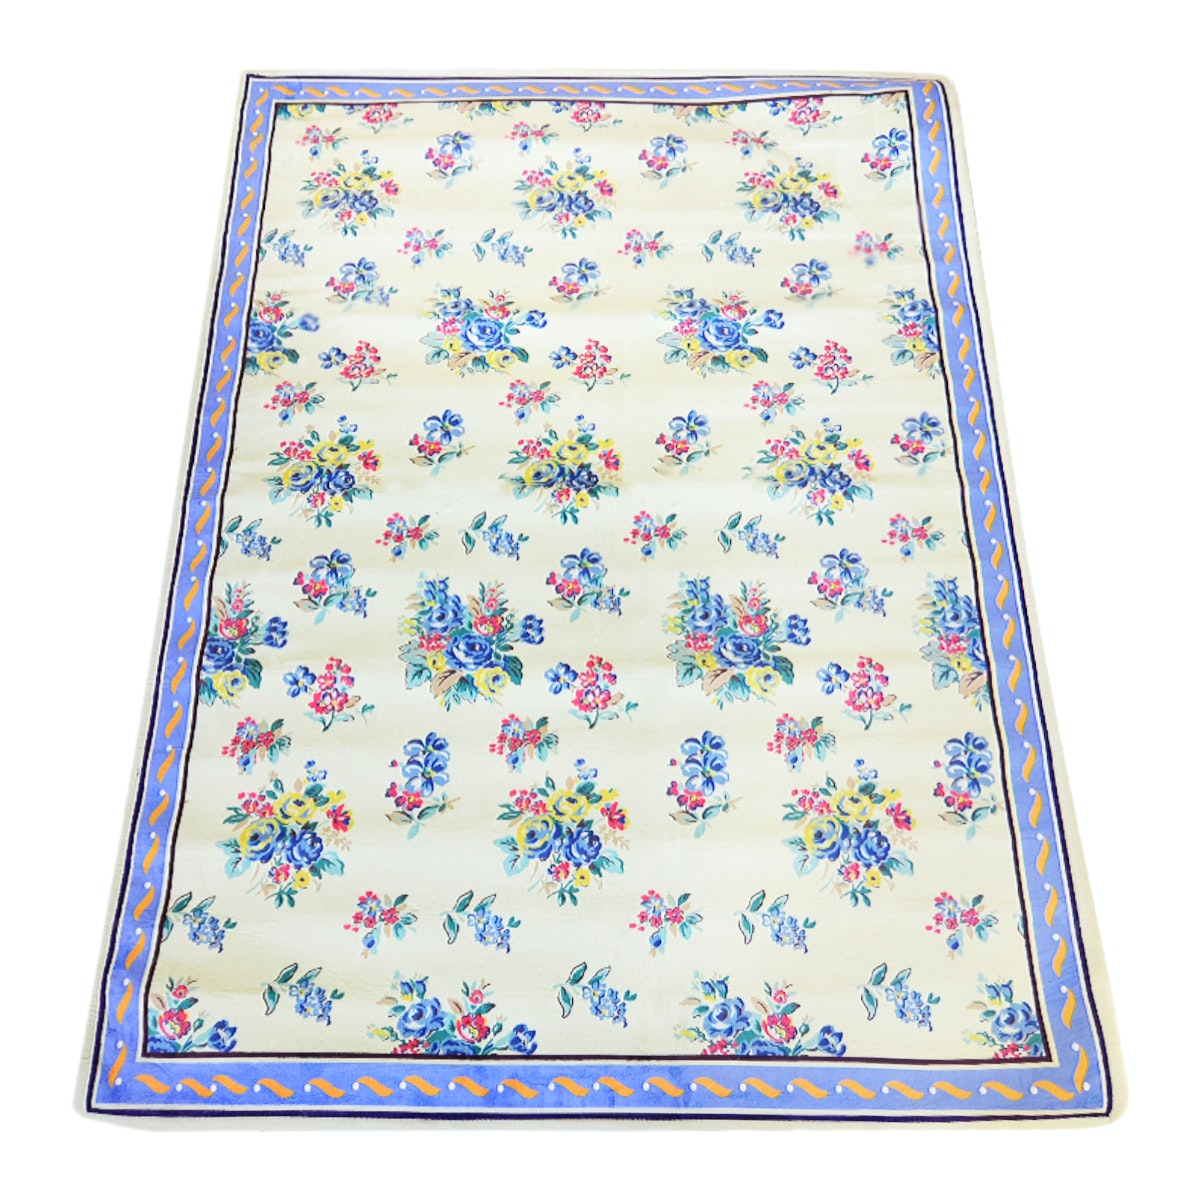 Vintage Story French Country Carpet 90 x 150 - 02